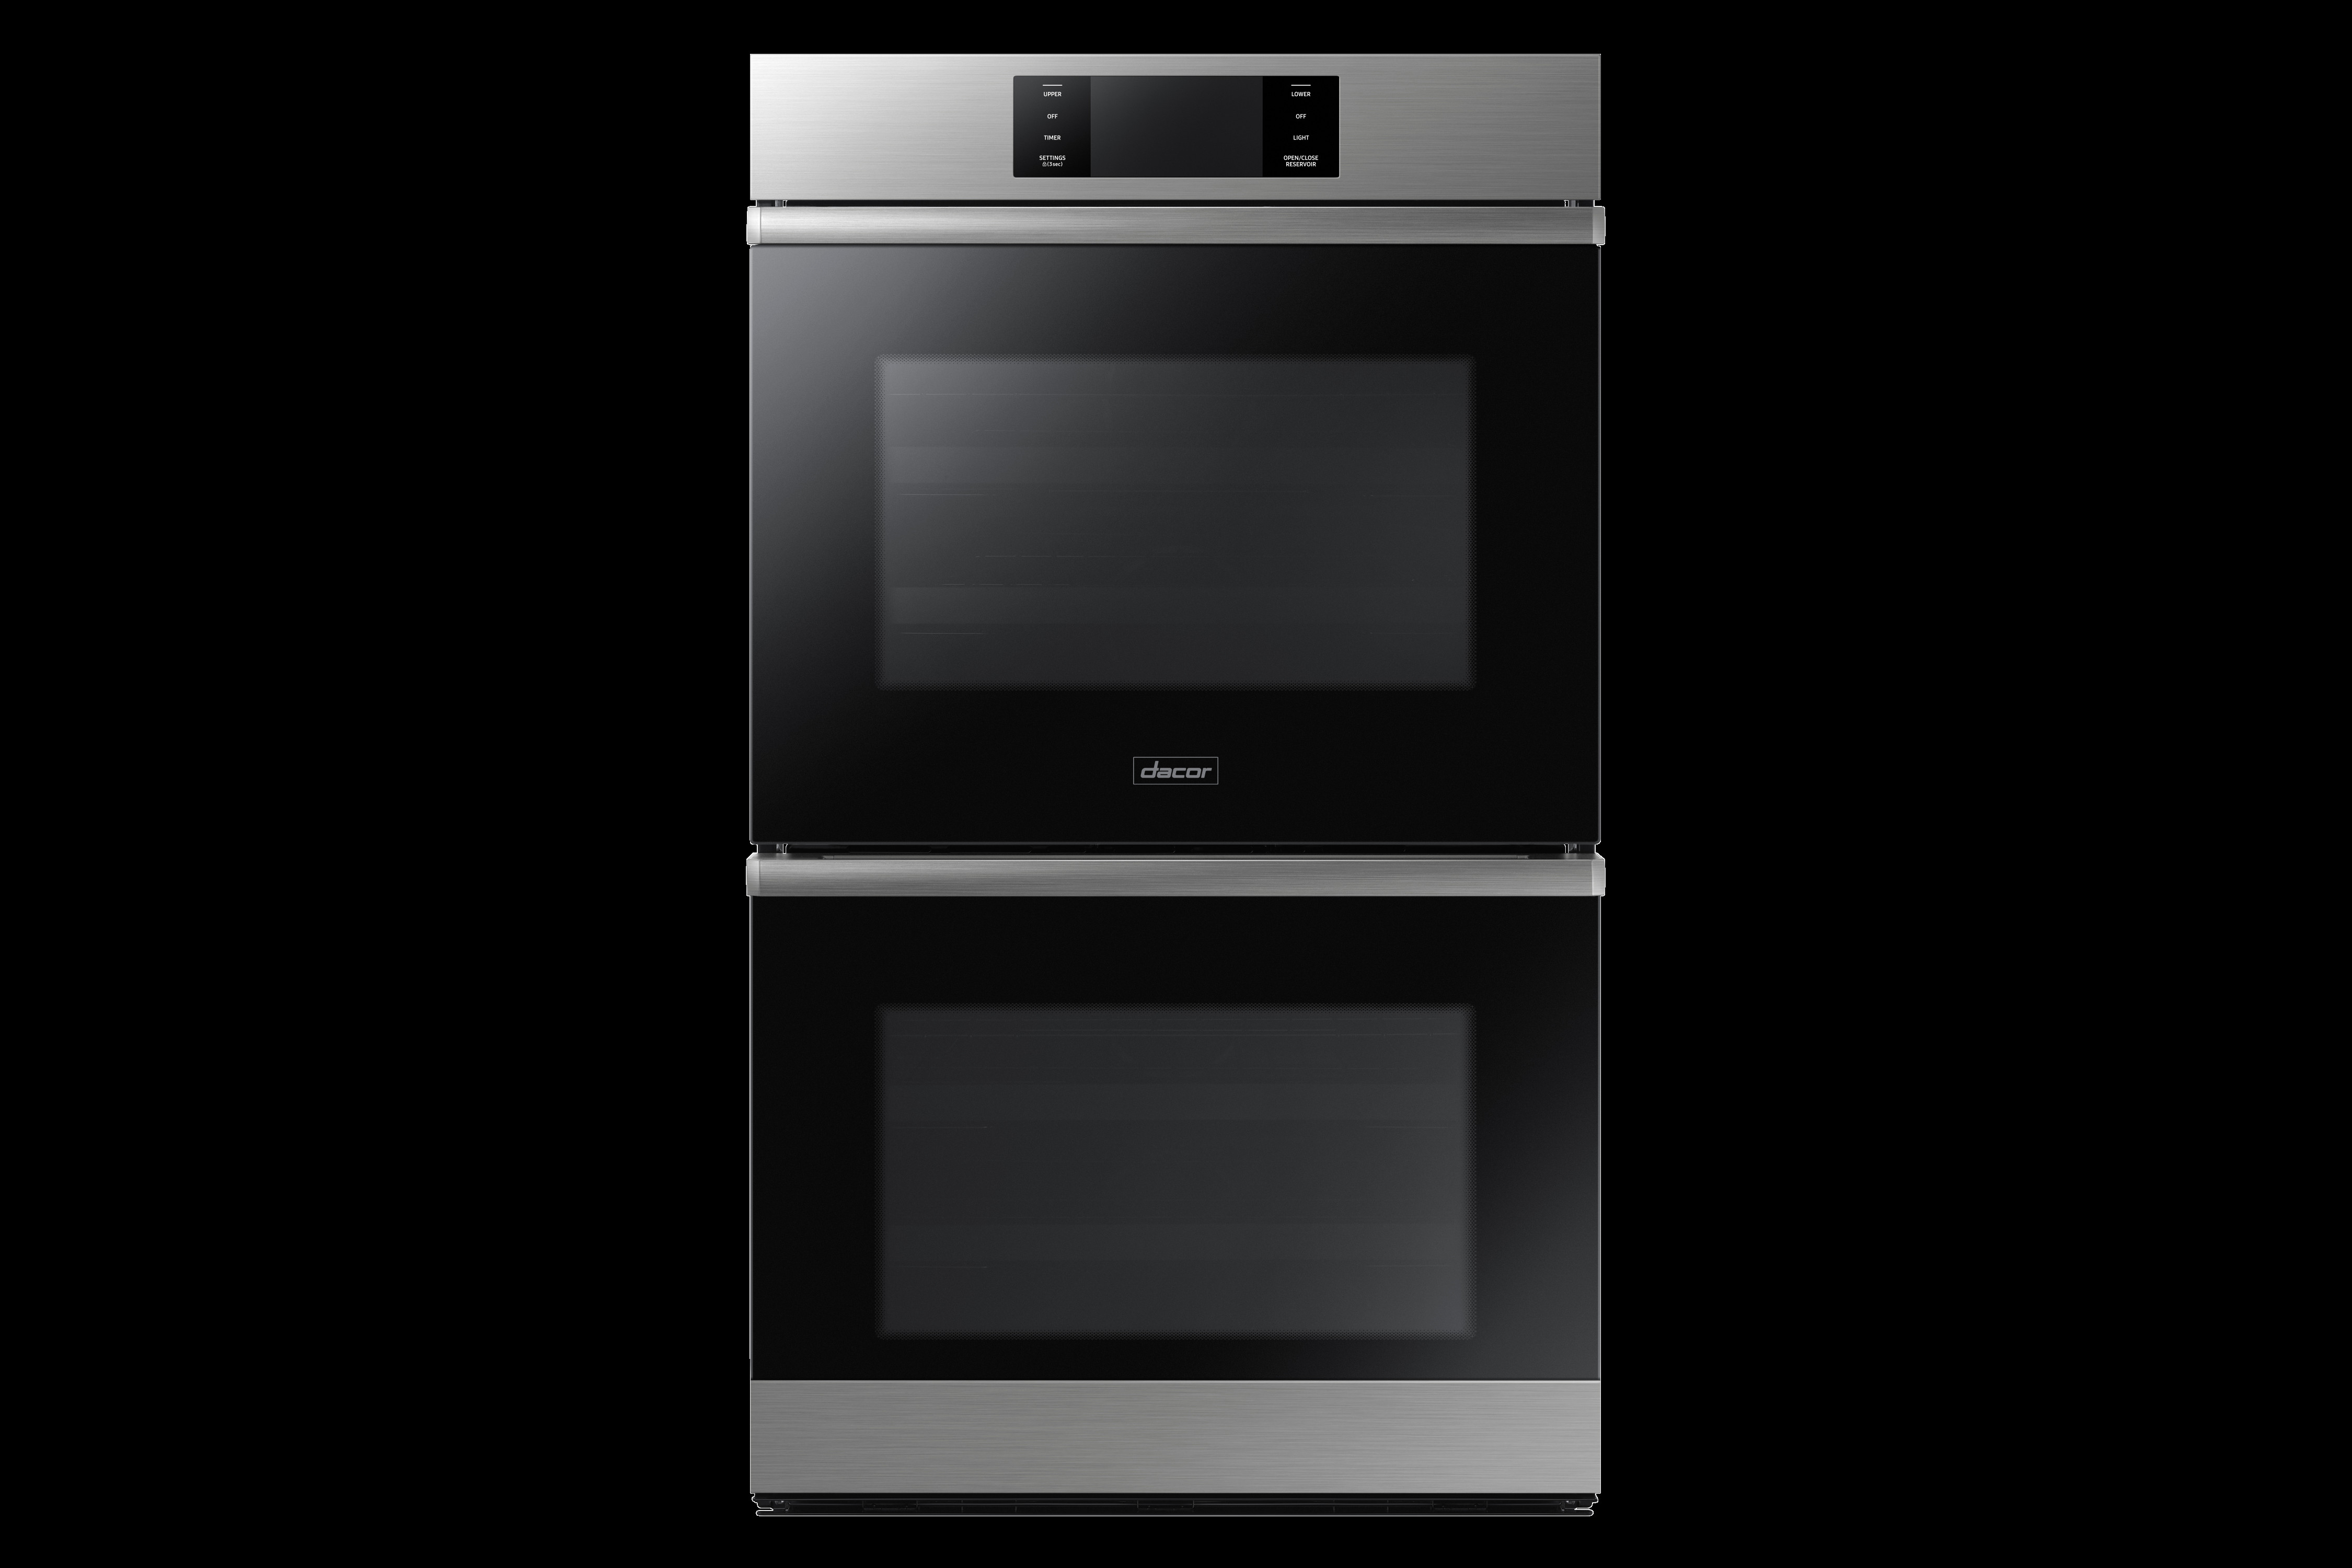 Dacor Dob30m977ds 30 Inch Electric Double Wall Oven With Four Part Wiring Diagram Image Disclaimer